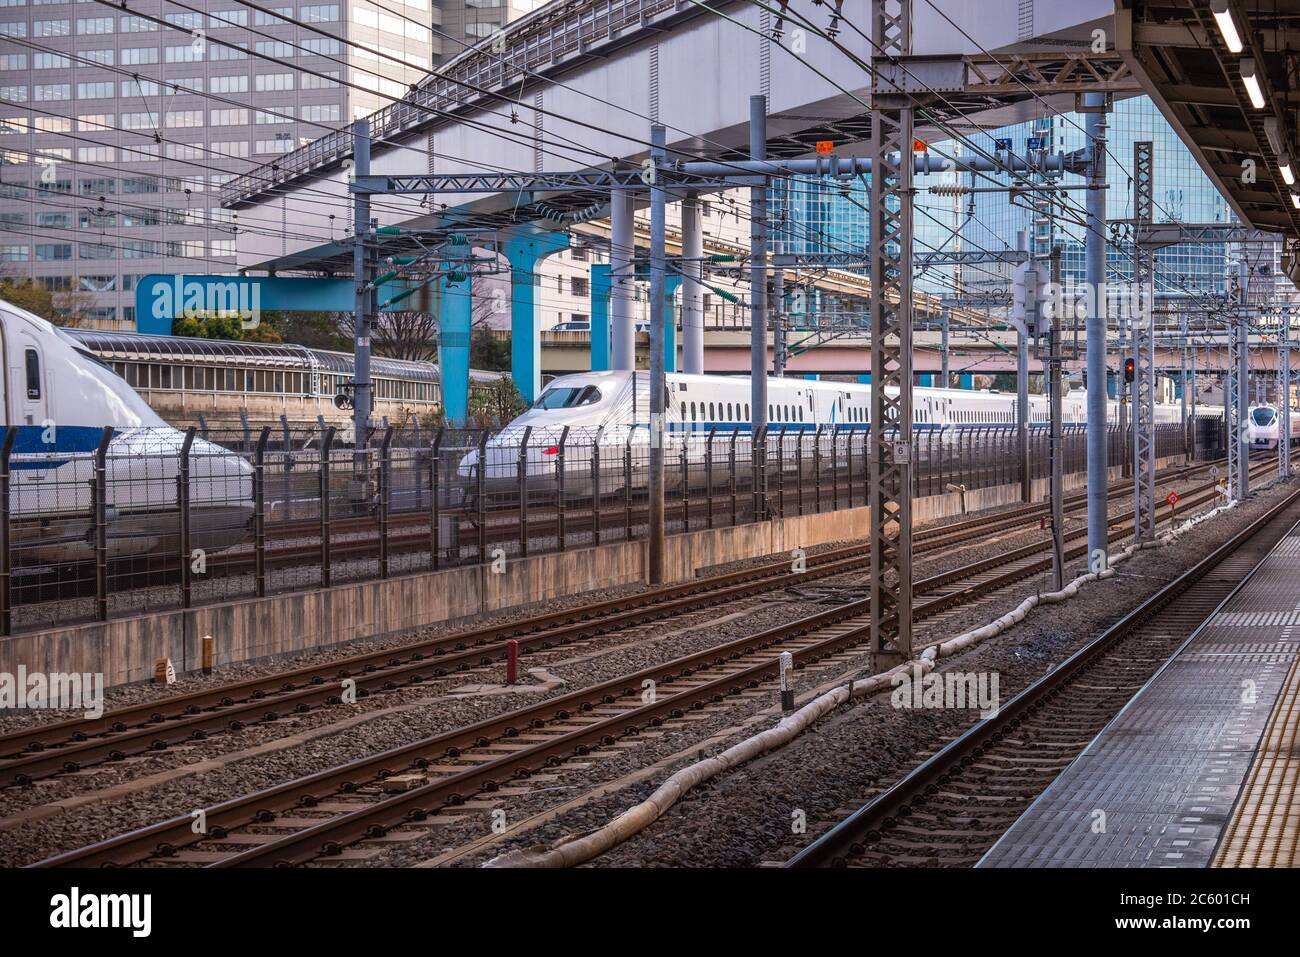 At the train station in Tokyo, Japan, where the train is coming in, Stock Photo